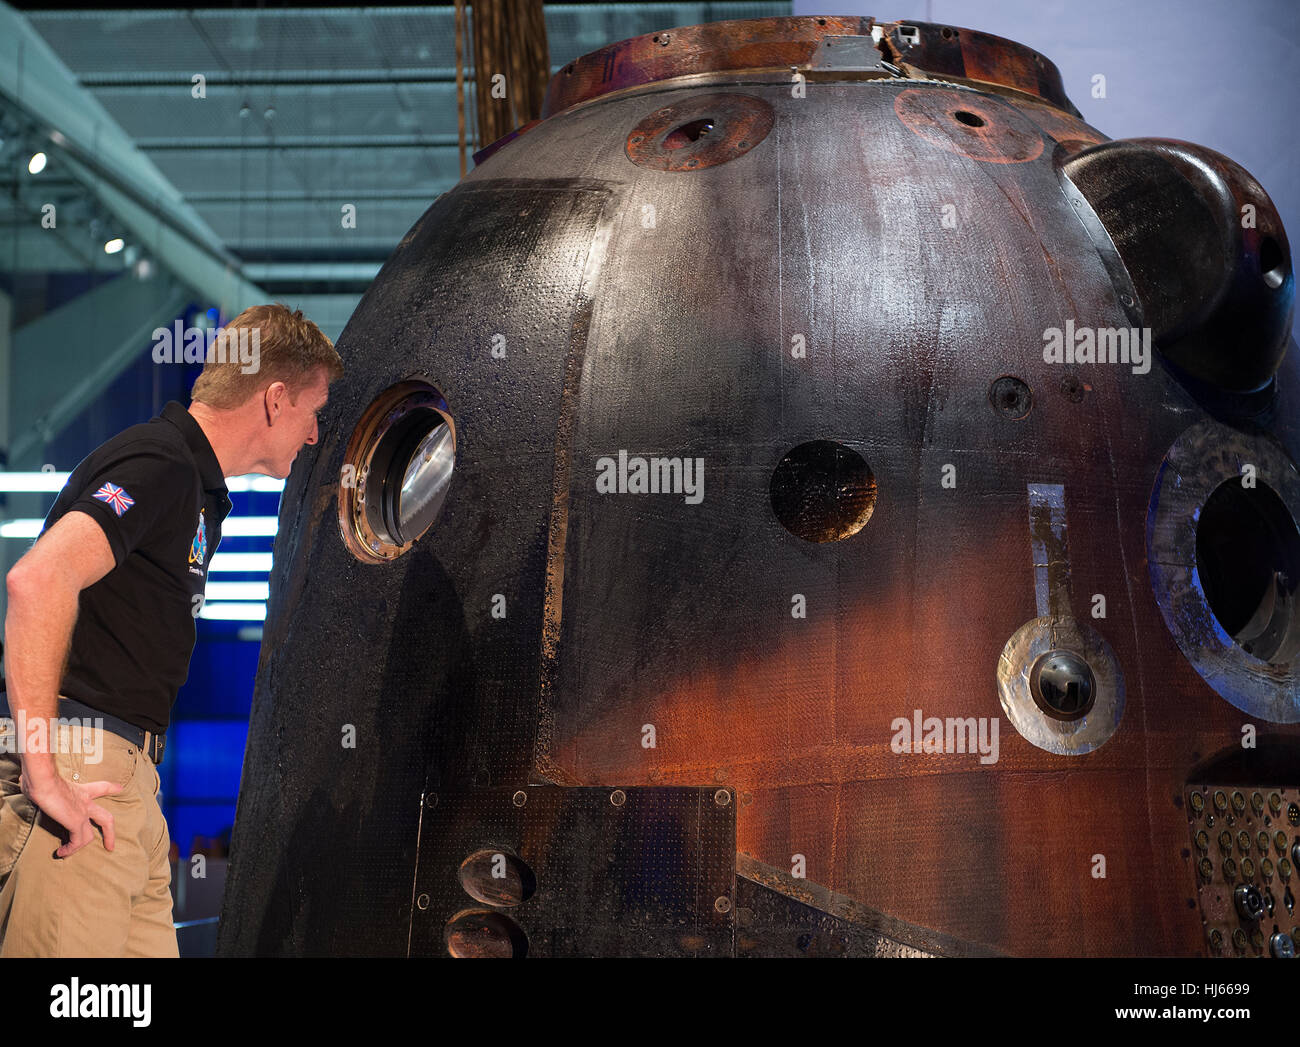 Science Museum, London, UK. 26th January, 2017. Tim Peake's spacecraft - Soyuz TMA-19M  - is now on free public Stock Photo